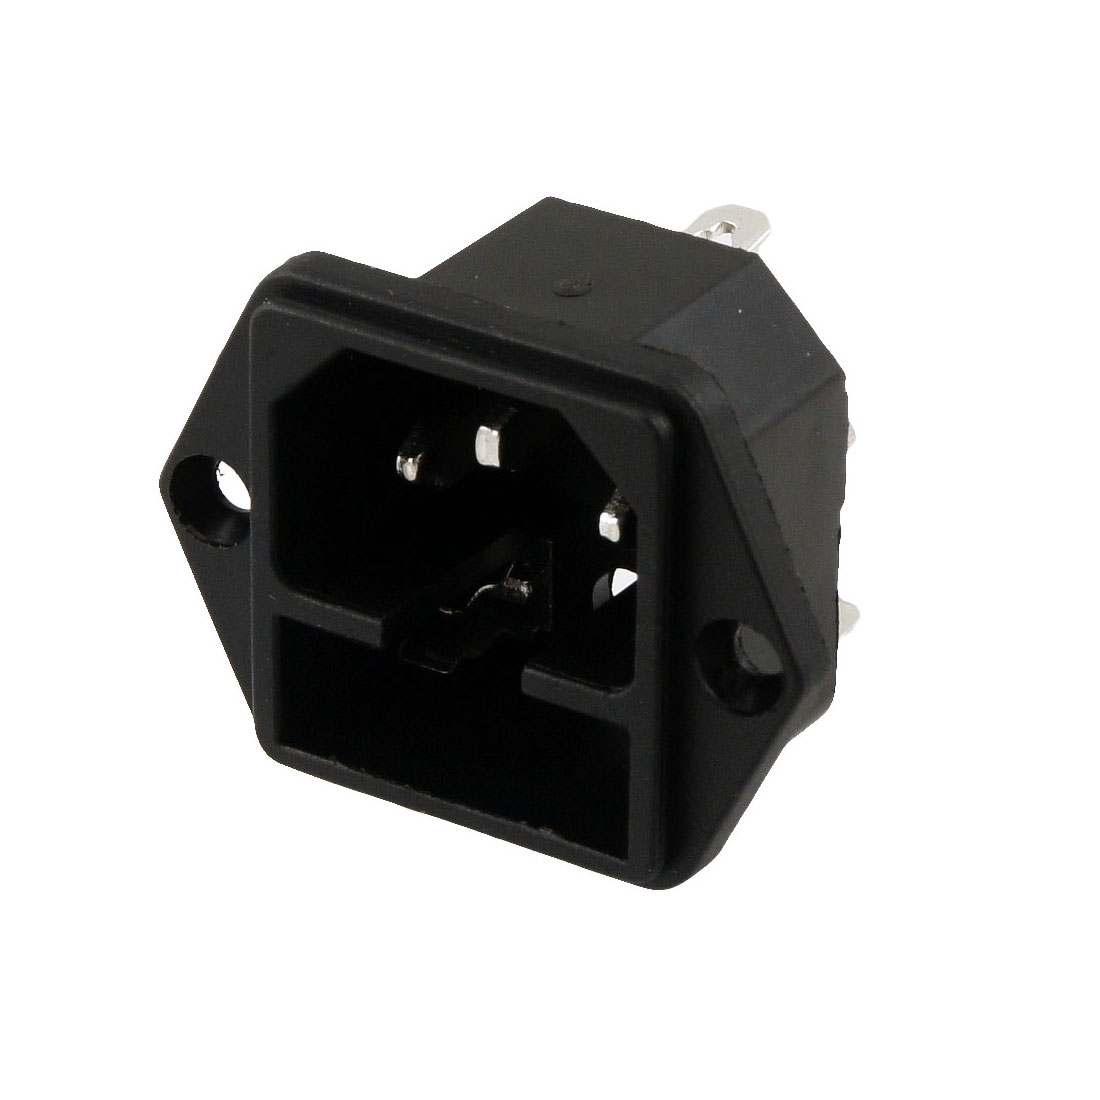 Black 3 Terminals IEC 320 C14 Inlet Male Power Conector Socket AC 250V 10A